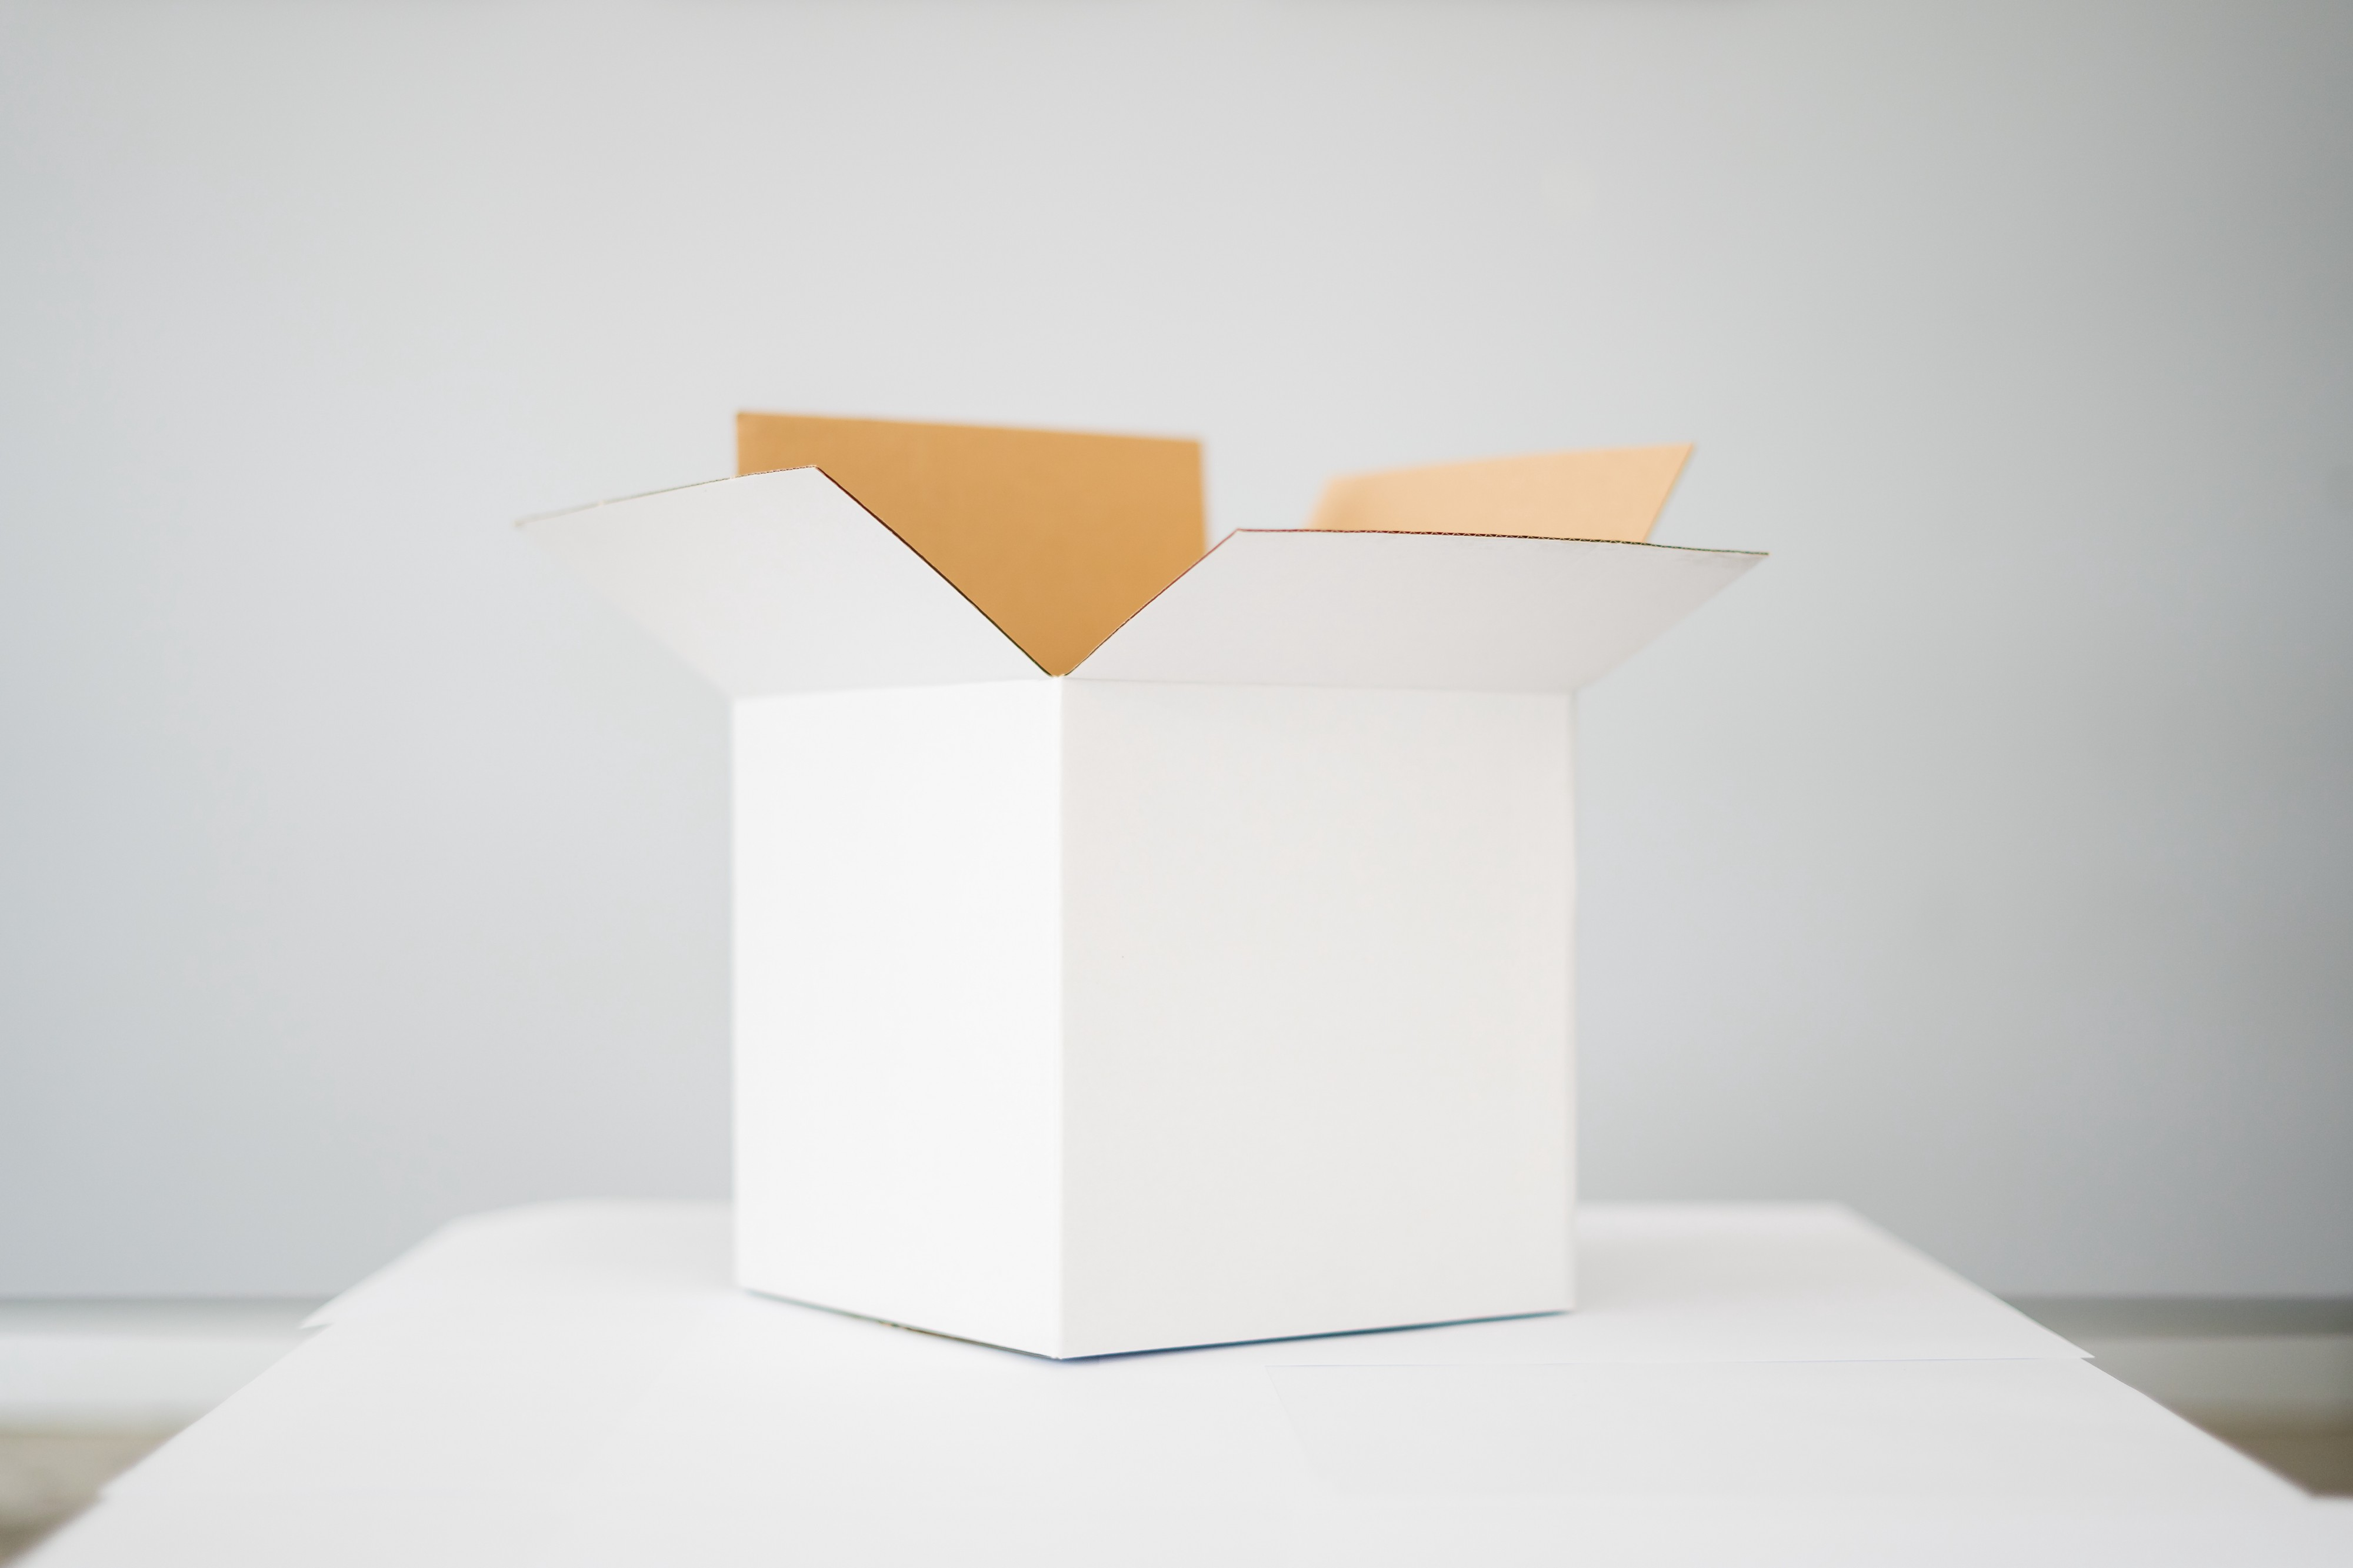 Open box on a table